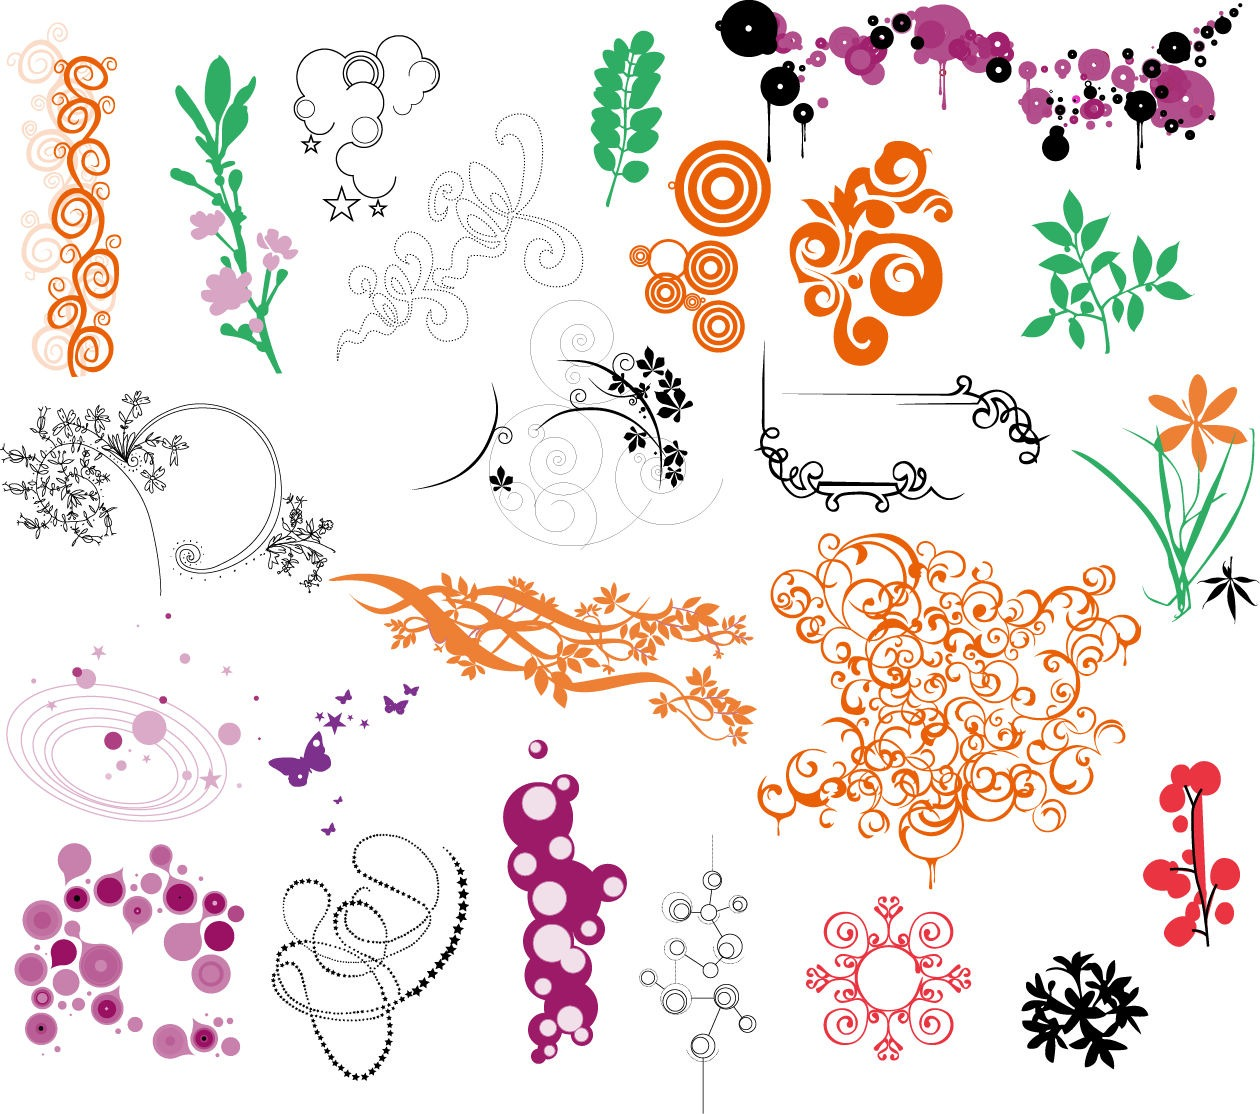 vector clipart design free - photo #44